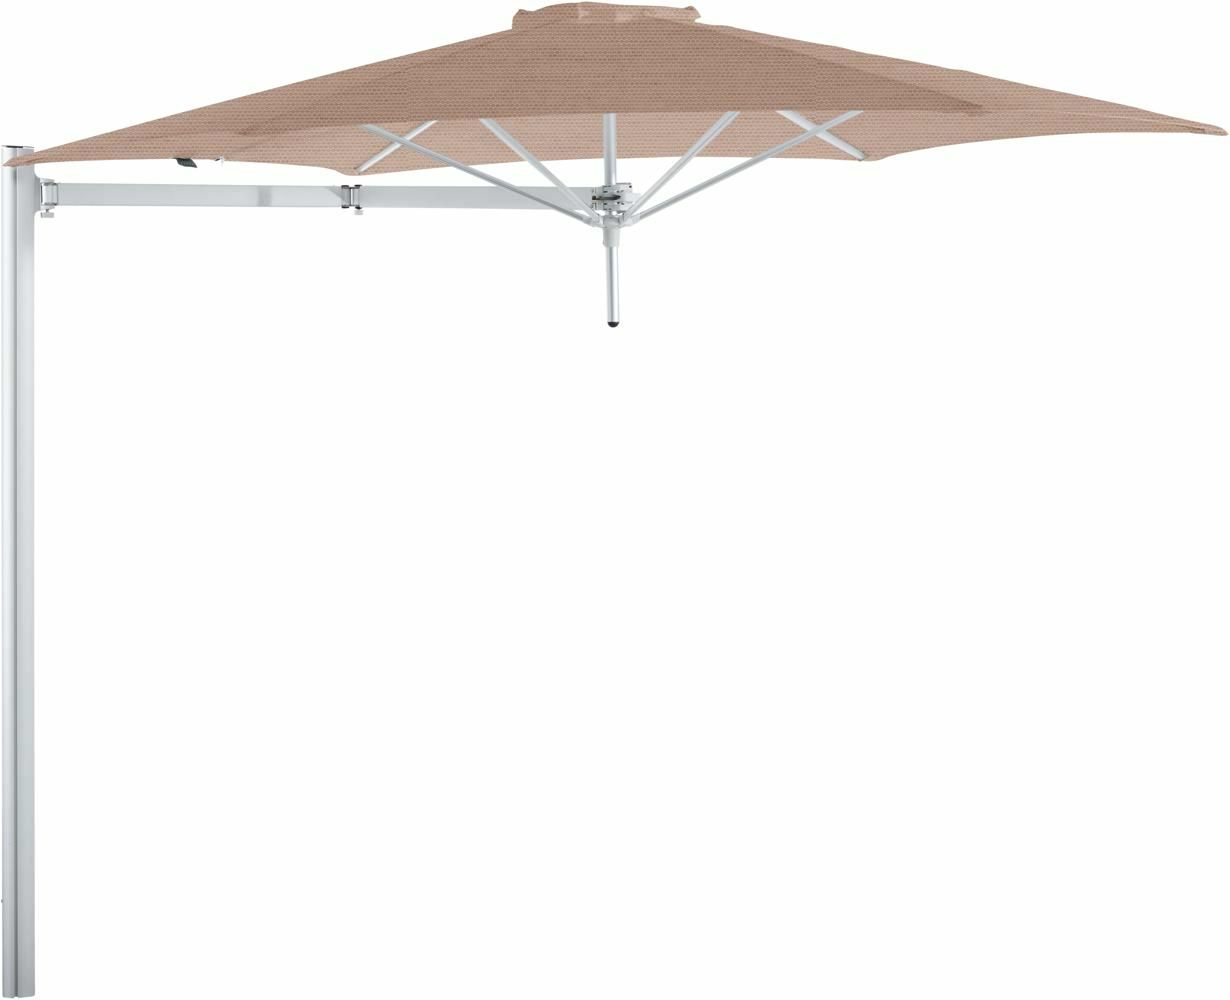 Paraflex cantilever umbrella round 3 m with Blush fabric and a Neo arm